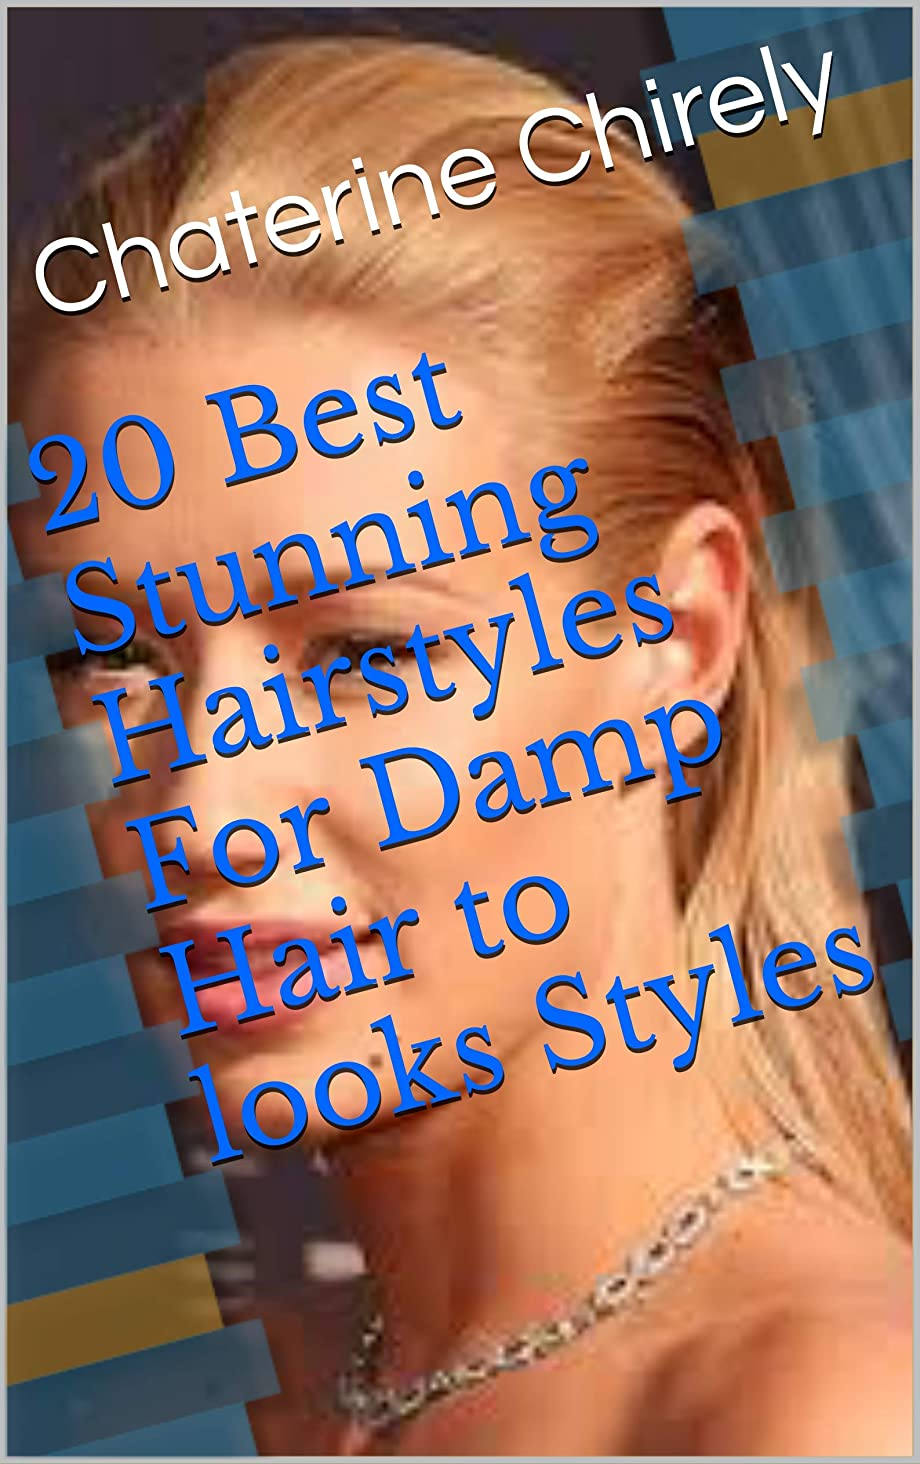 下る証人経済20 Best Stunning Hairstyles For Damp Hair to looks Styles (English Edition)